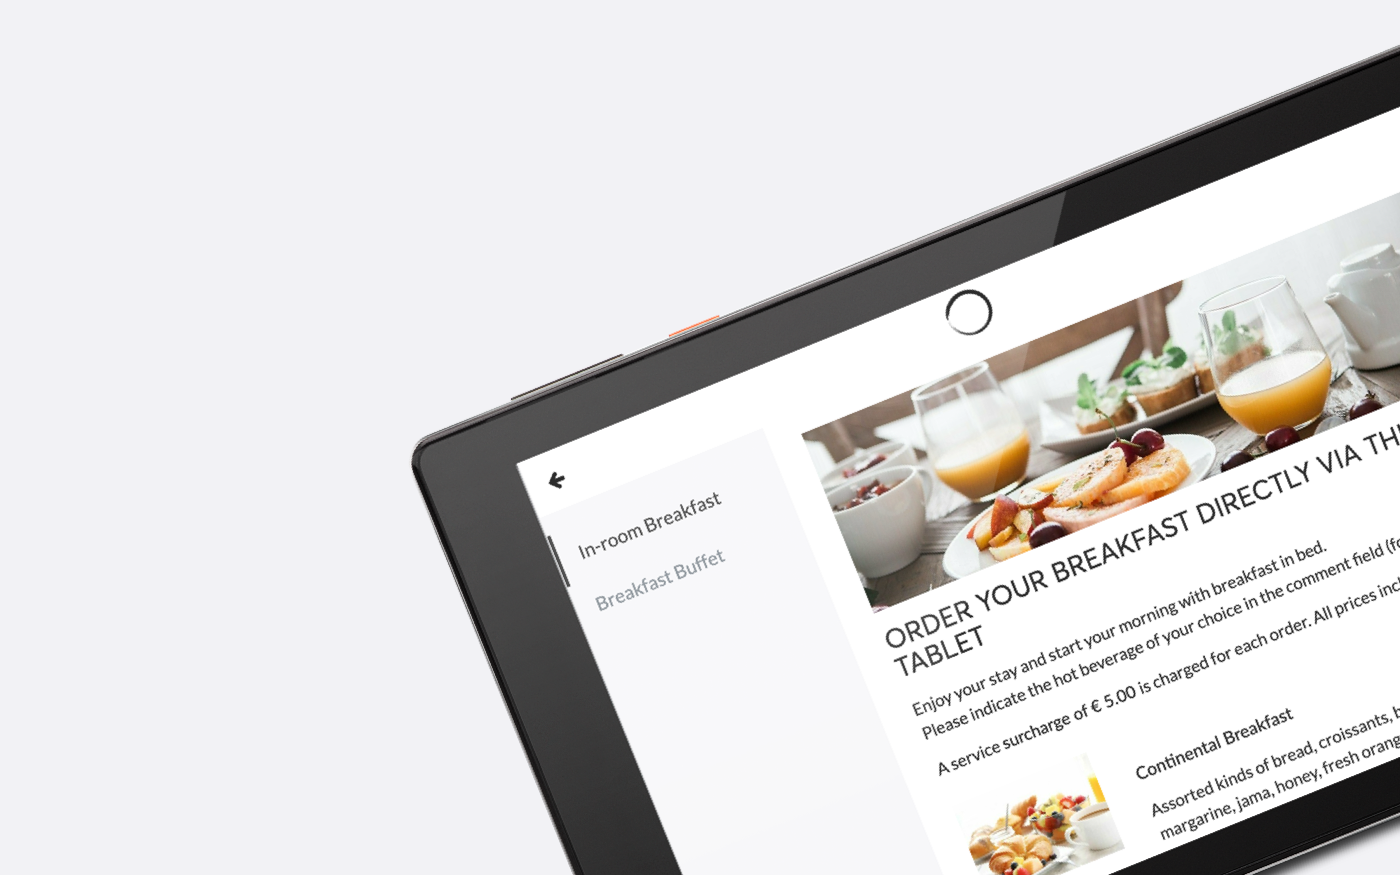 SuitePad & COVID-19: order breakfast via the tablet